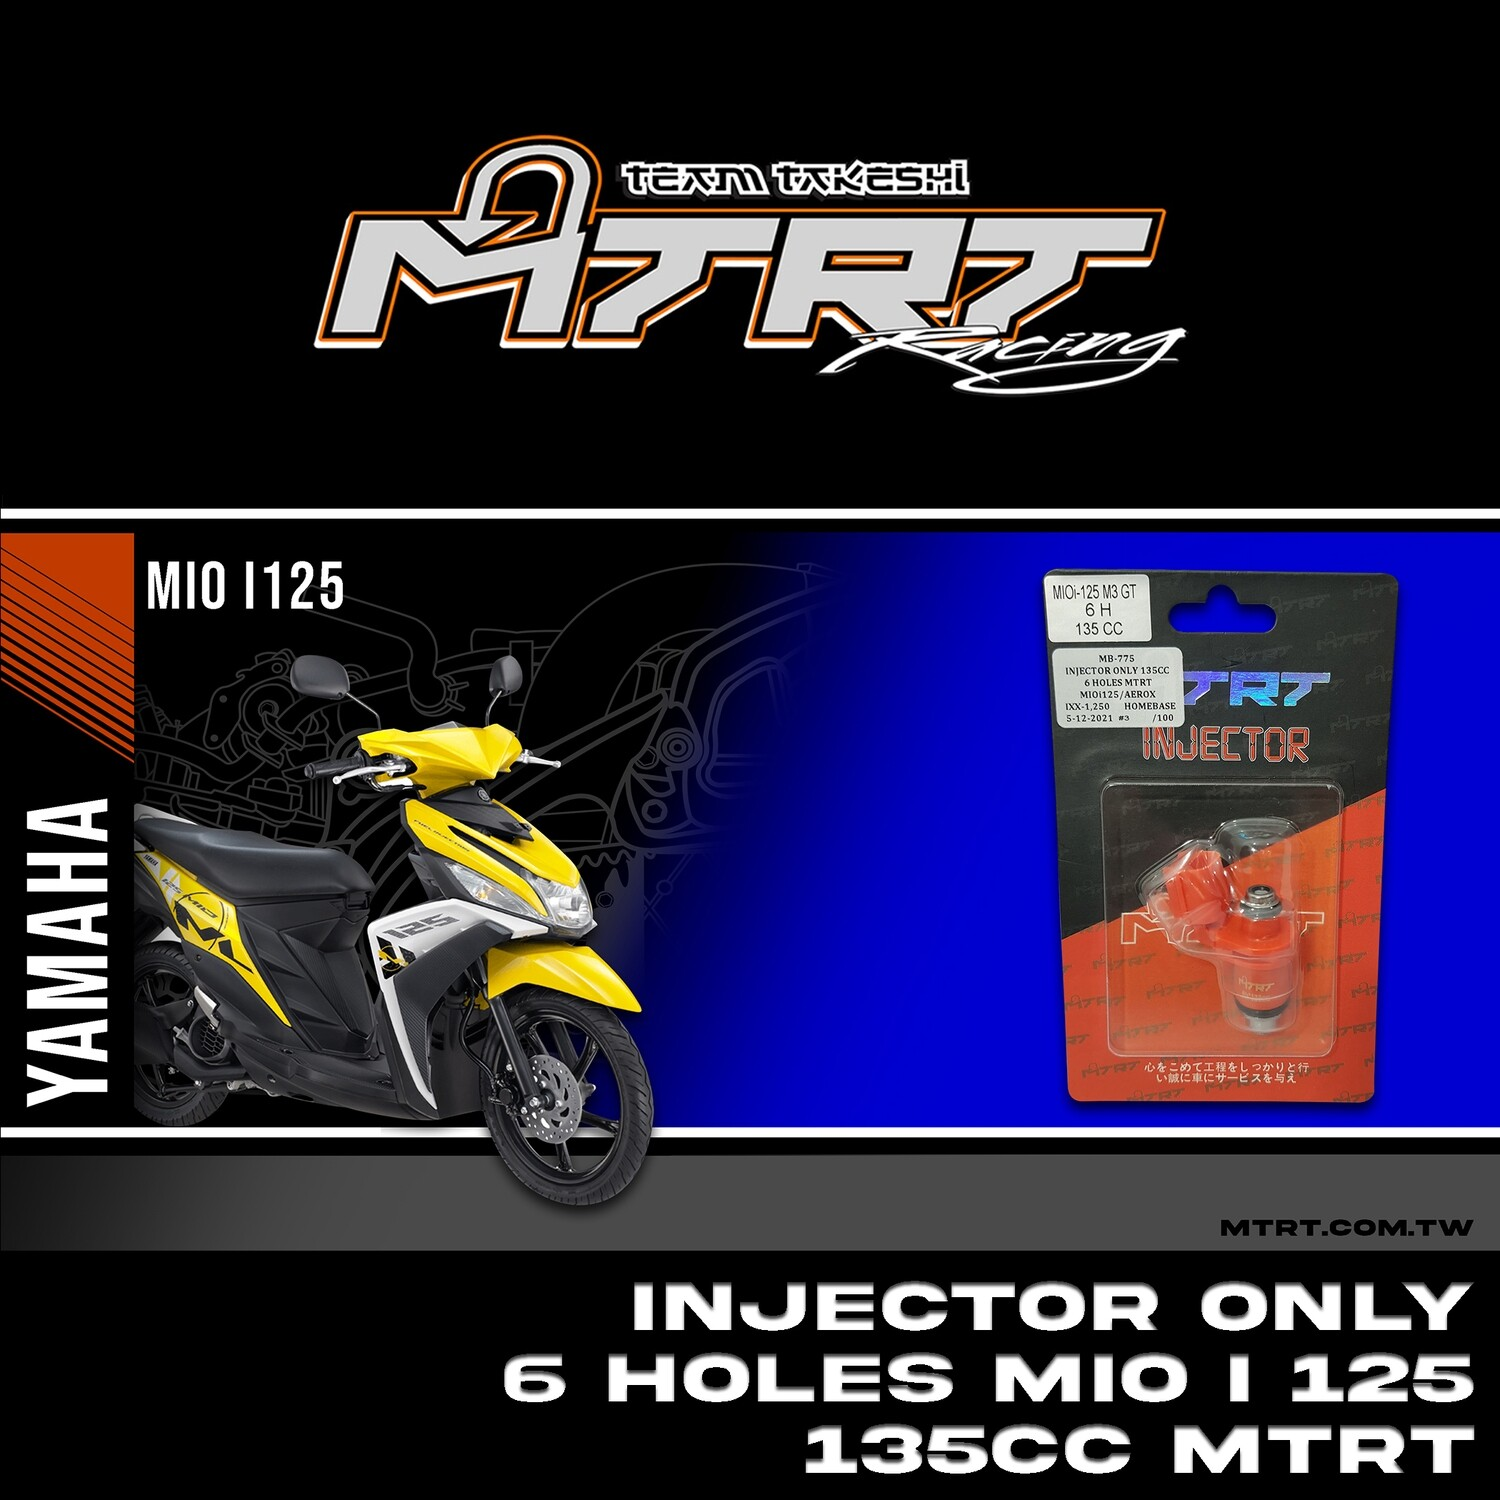 INJECTOR ONLY 6HOLES  MIOi125/Aerox155  135CC MTRT